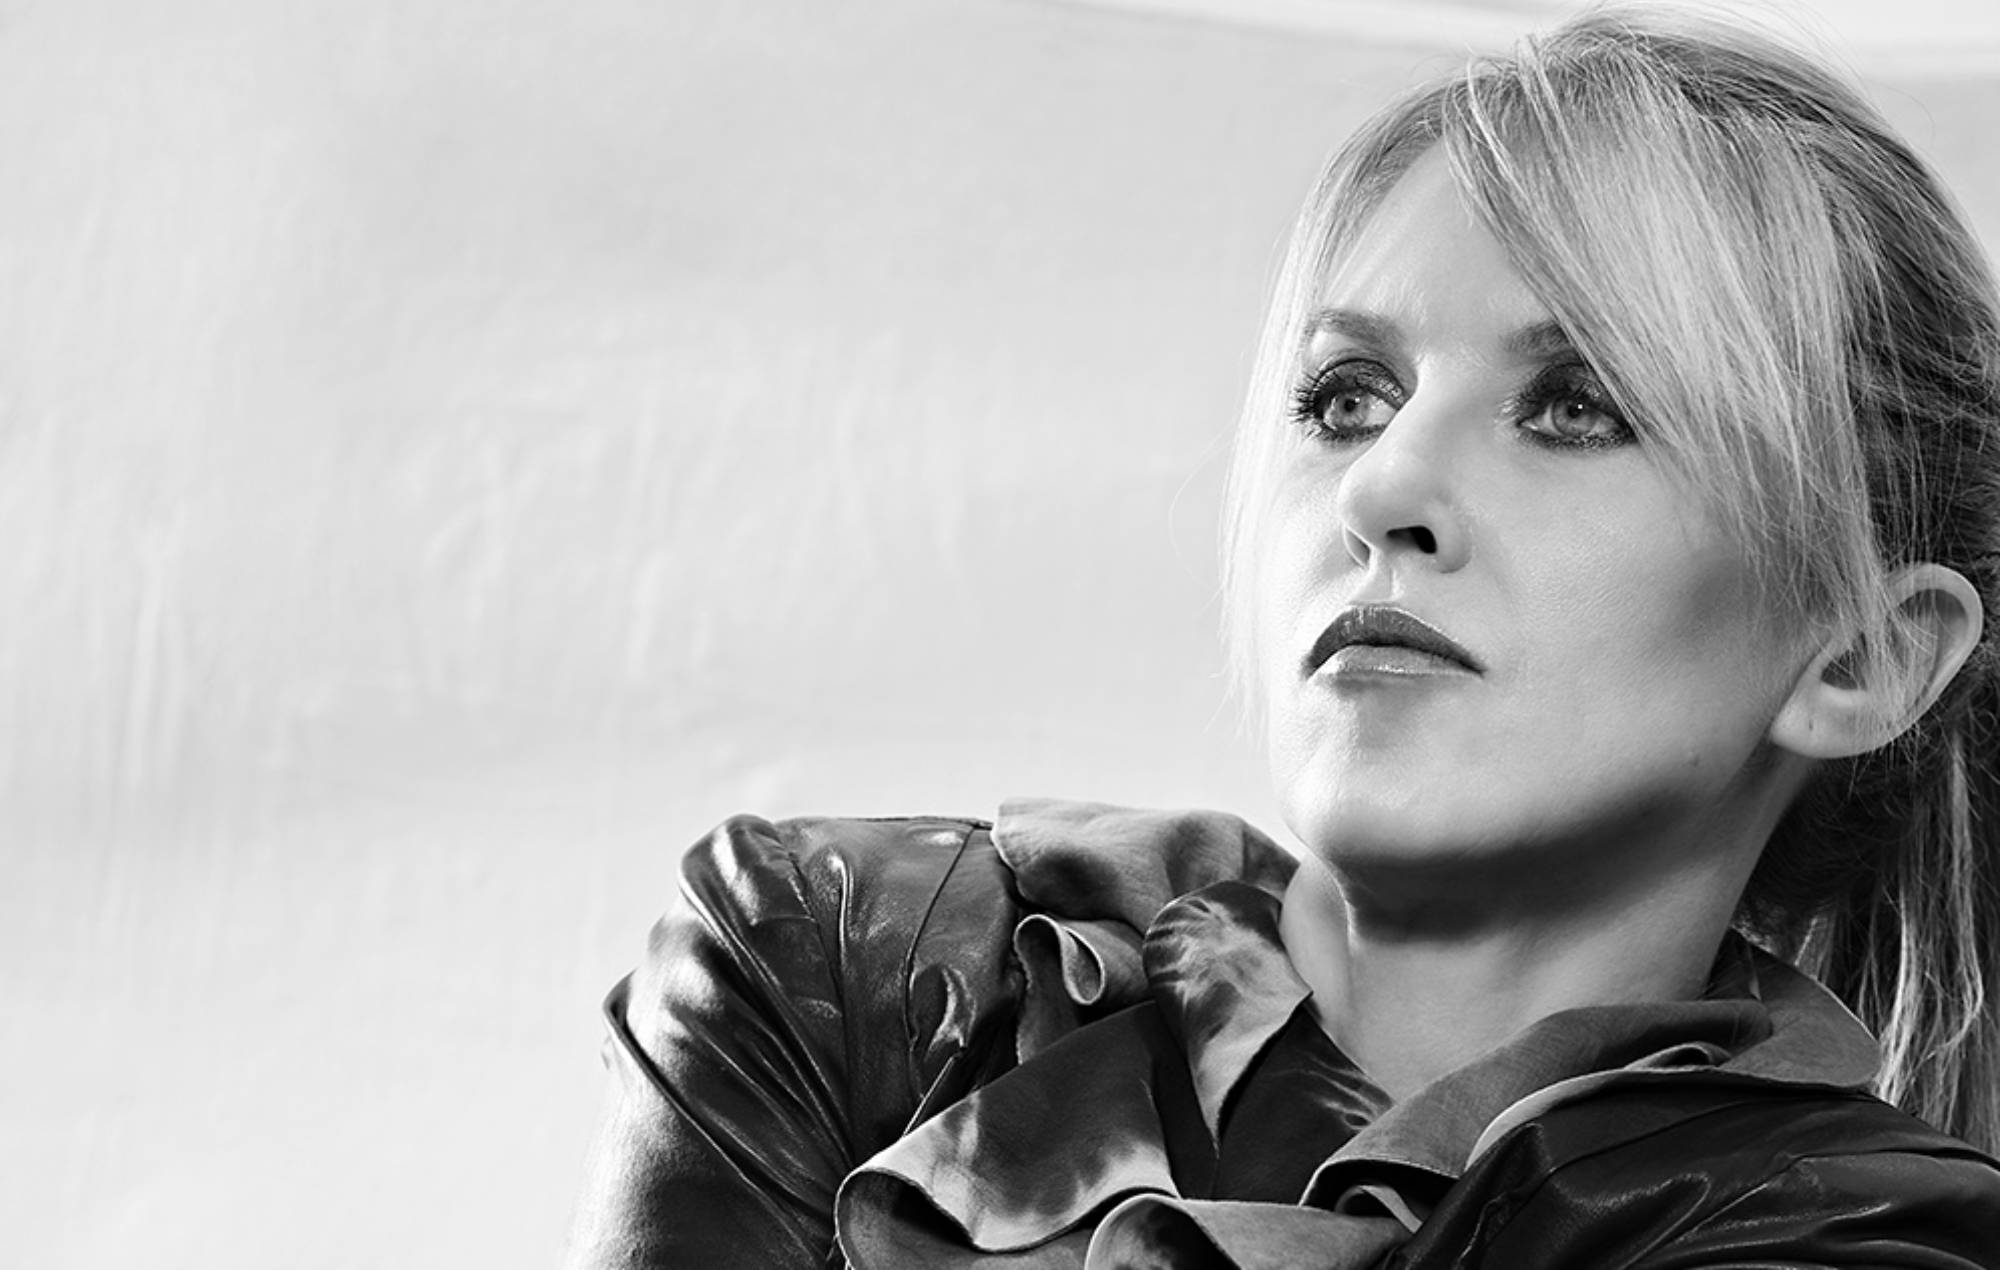 Liz Phair pays tribute to Lou Reed and Laurie Anderson on new track 'Hey Lou'